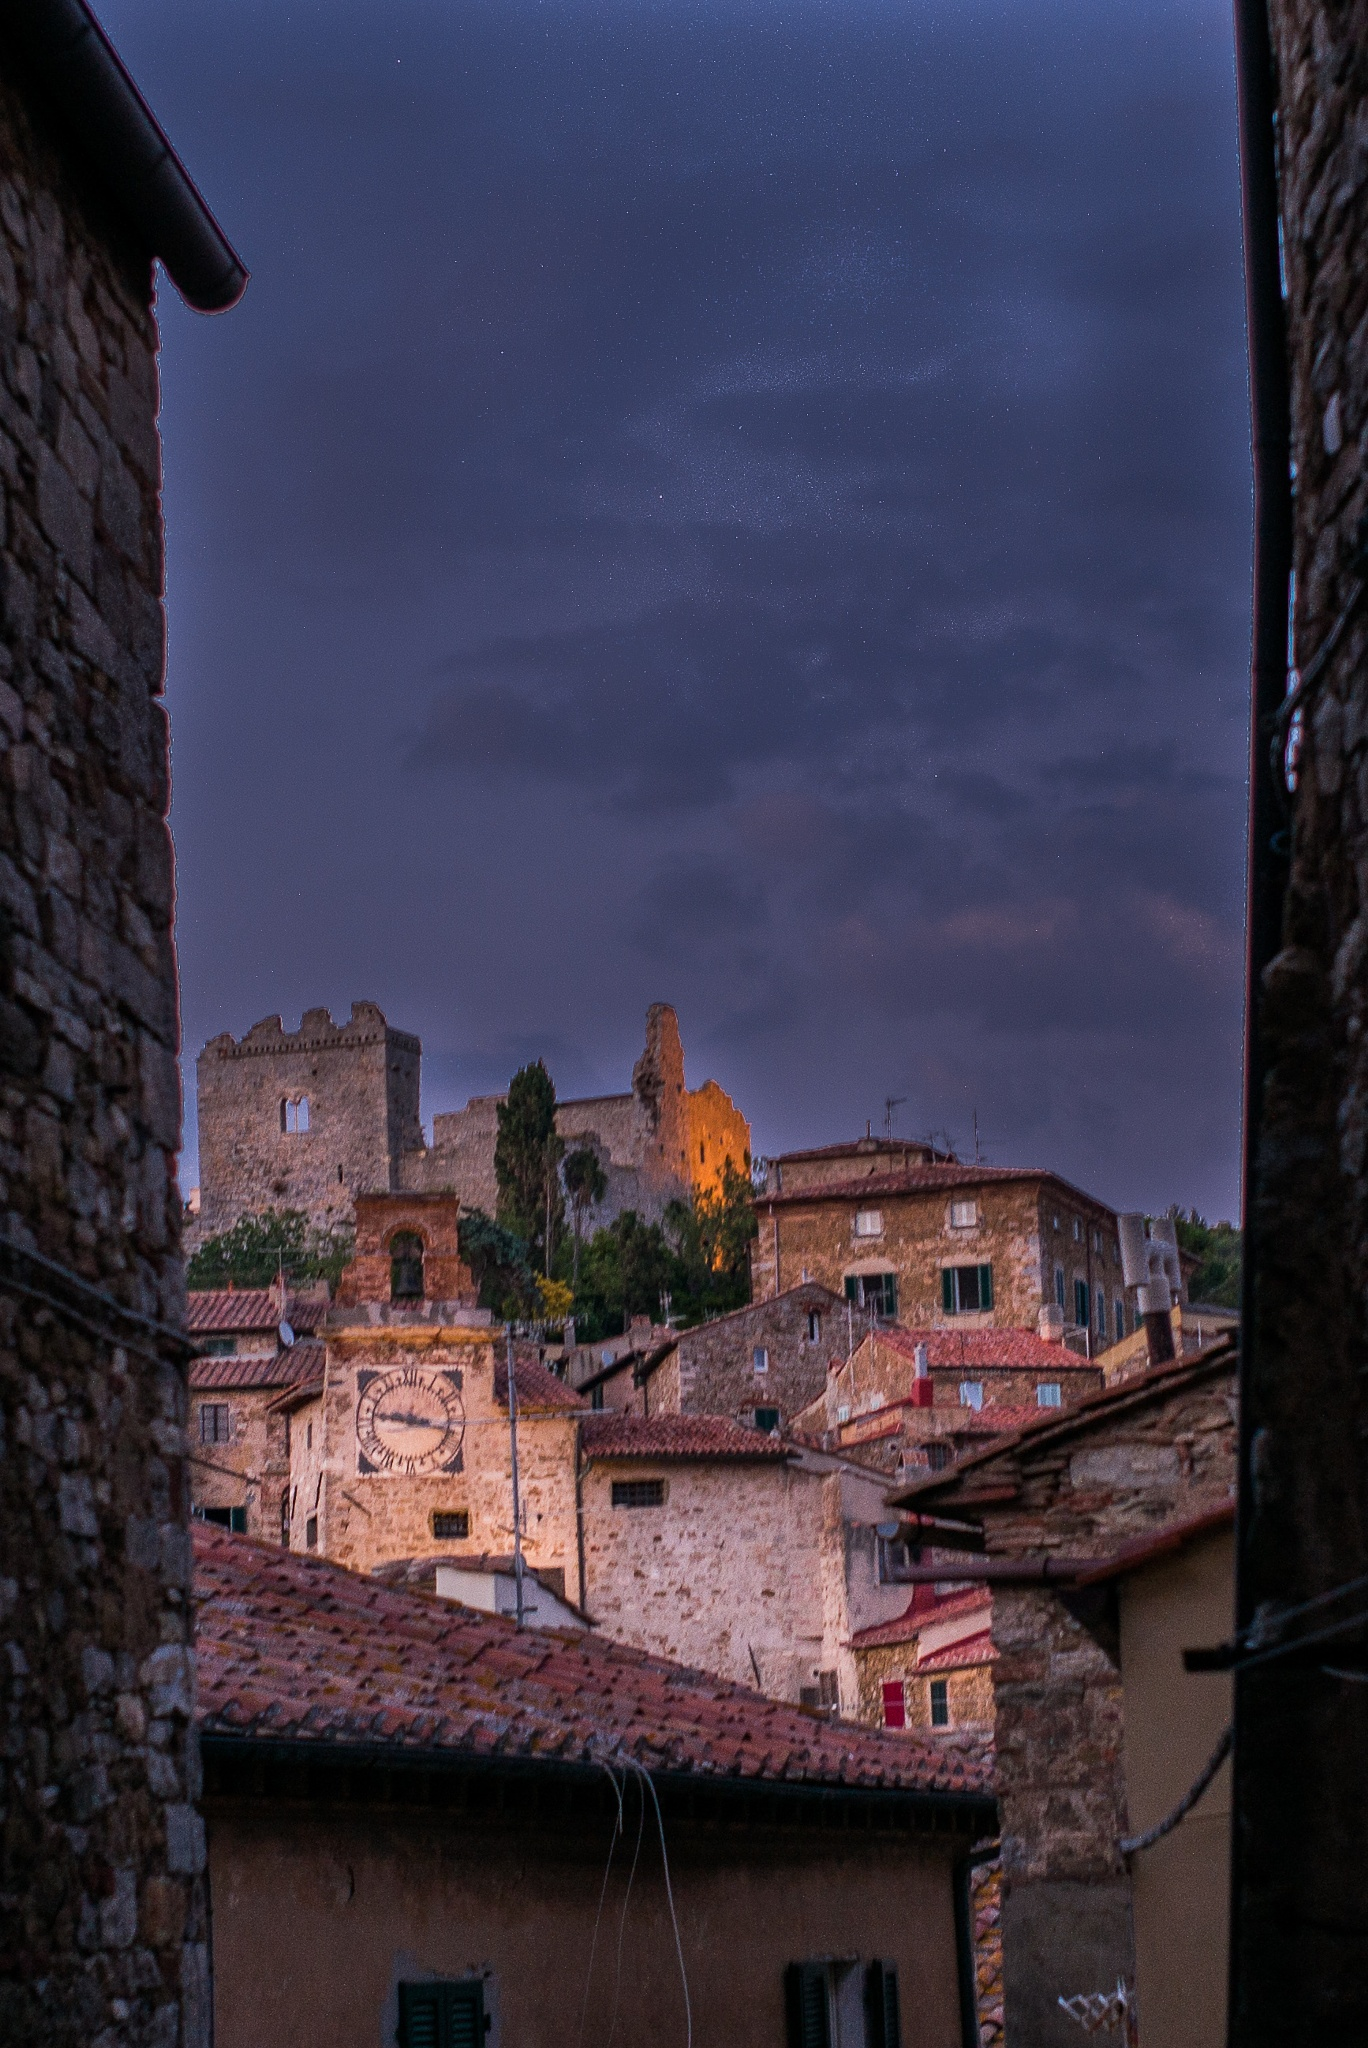 The village  at dusk by giorgiomorrone